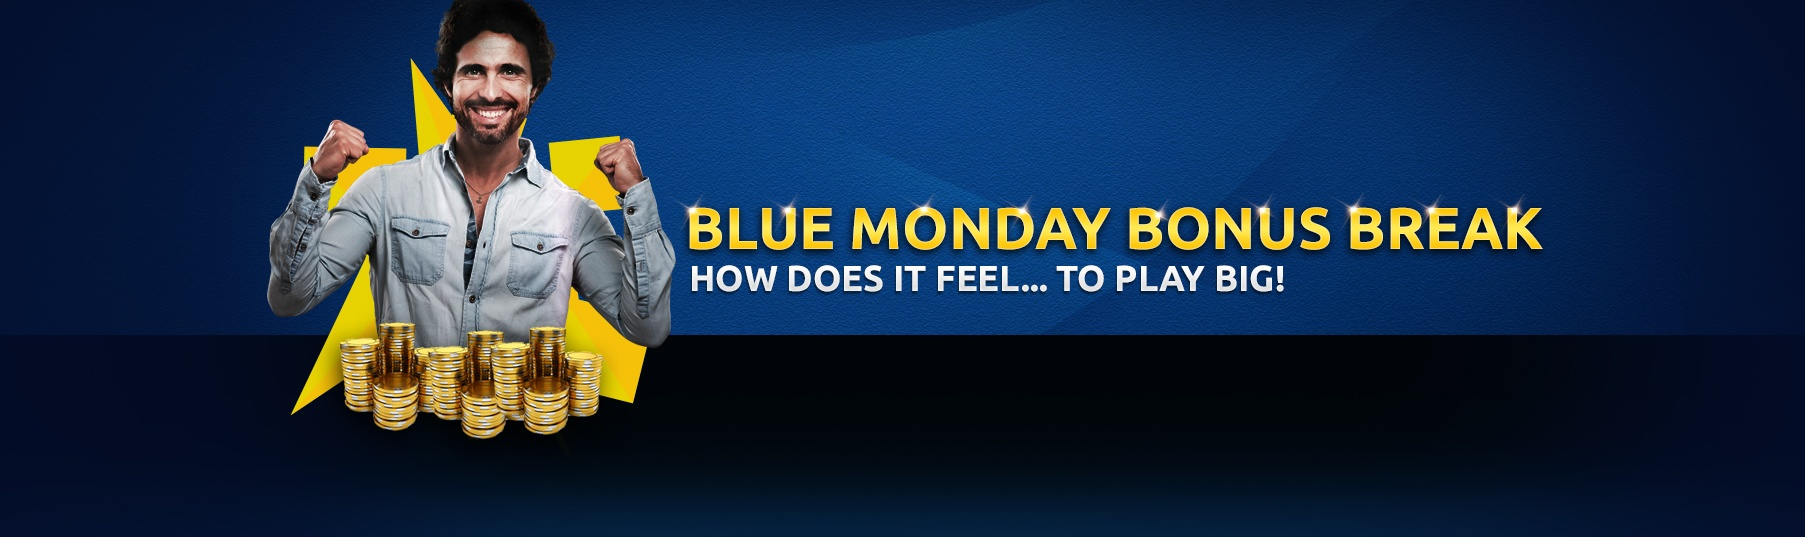 Blue Monday Bonus Break